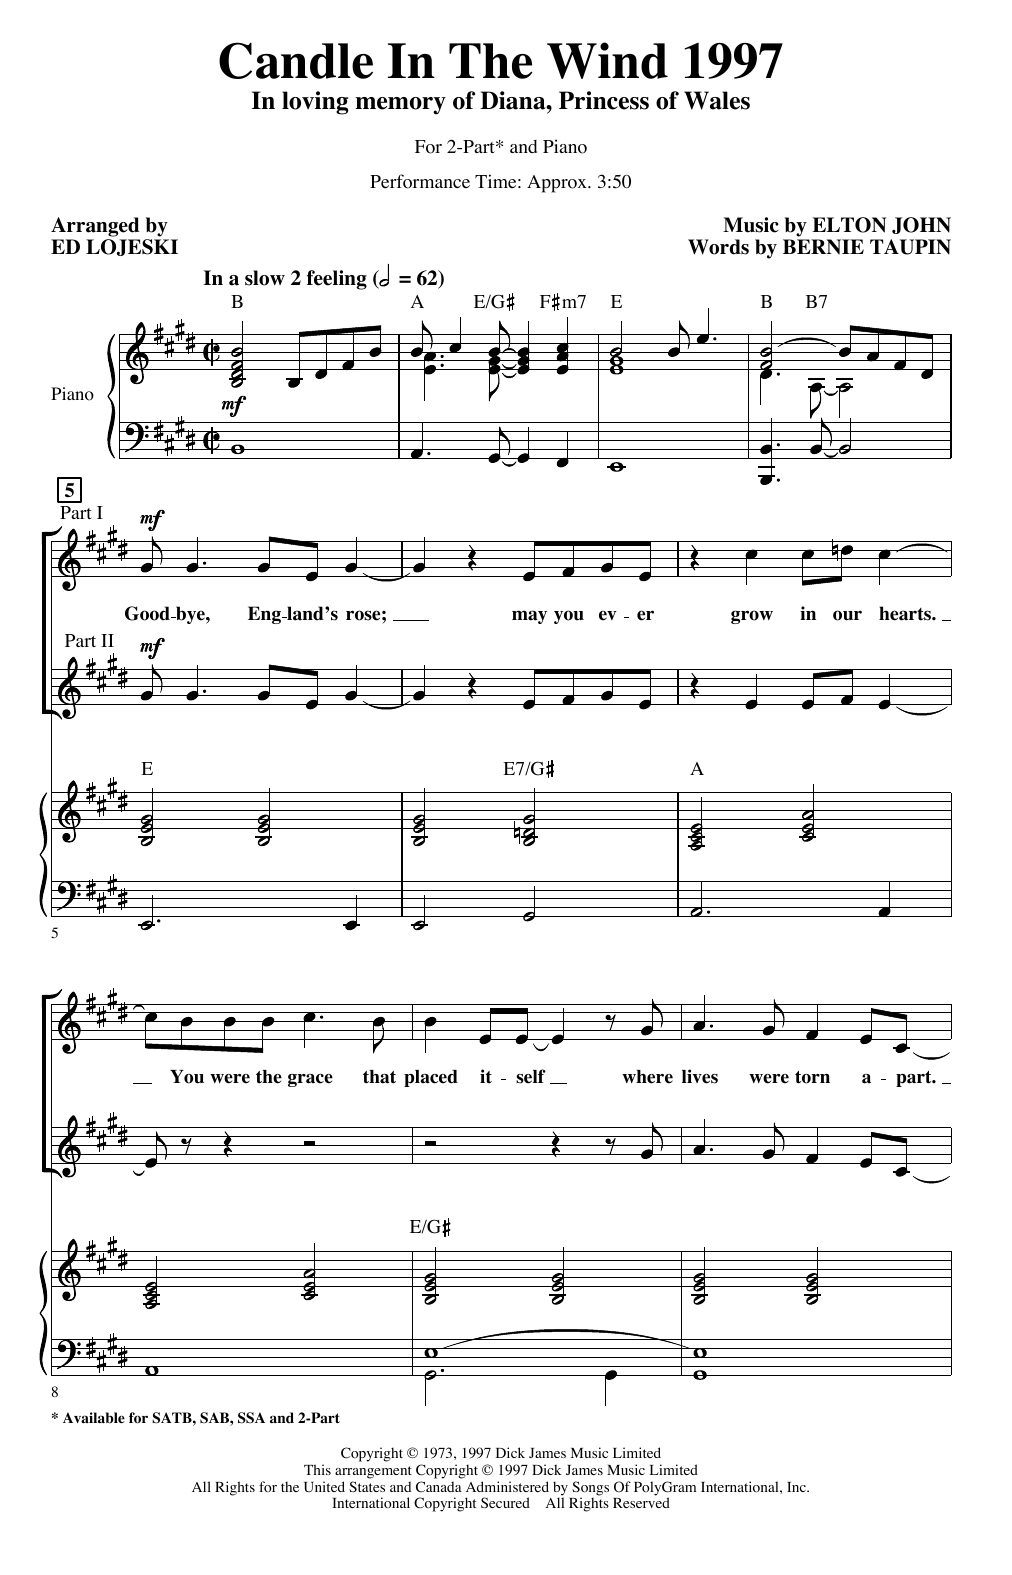 Candle In The Wind (arr. Ed Lojeski) (2-Part Choir)